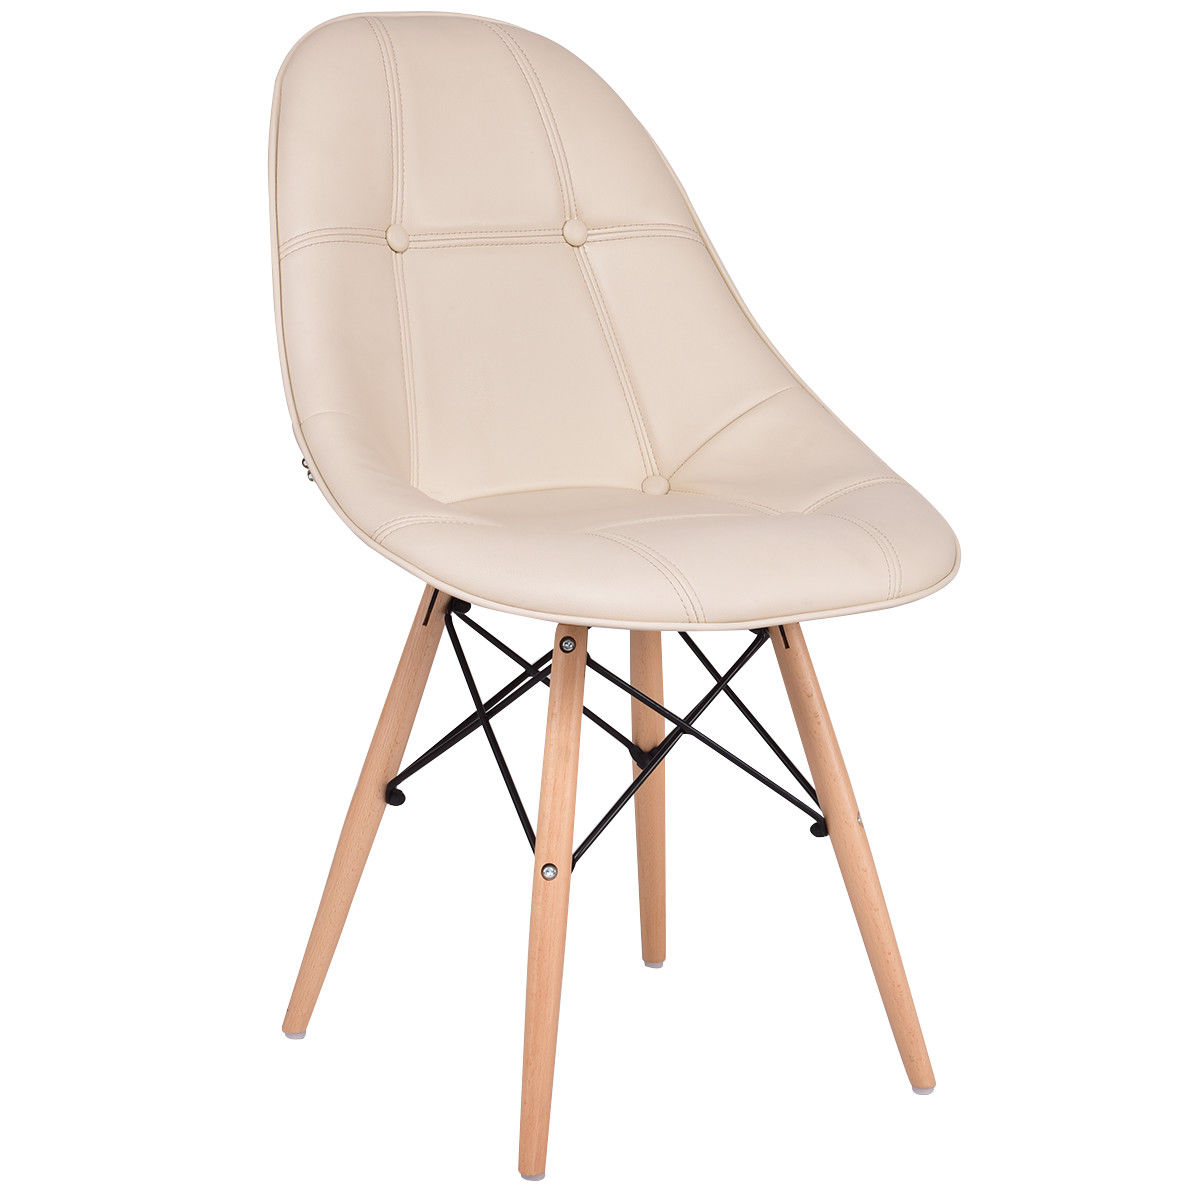 Set of 2 Armless PU Leather Dining Chairs w/ Wood Legs-Beige